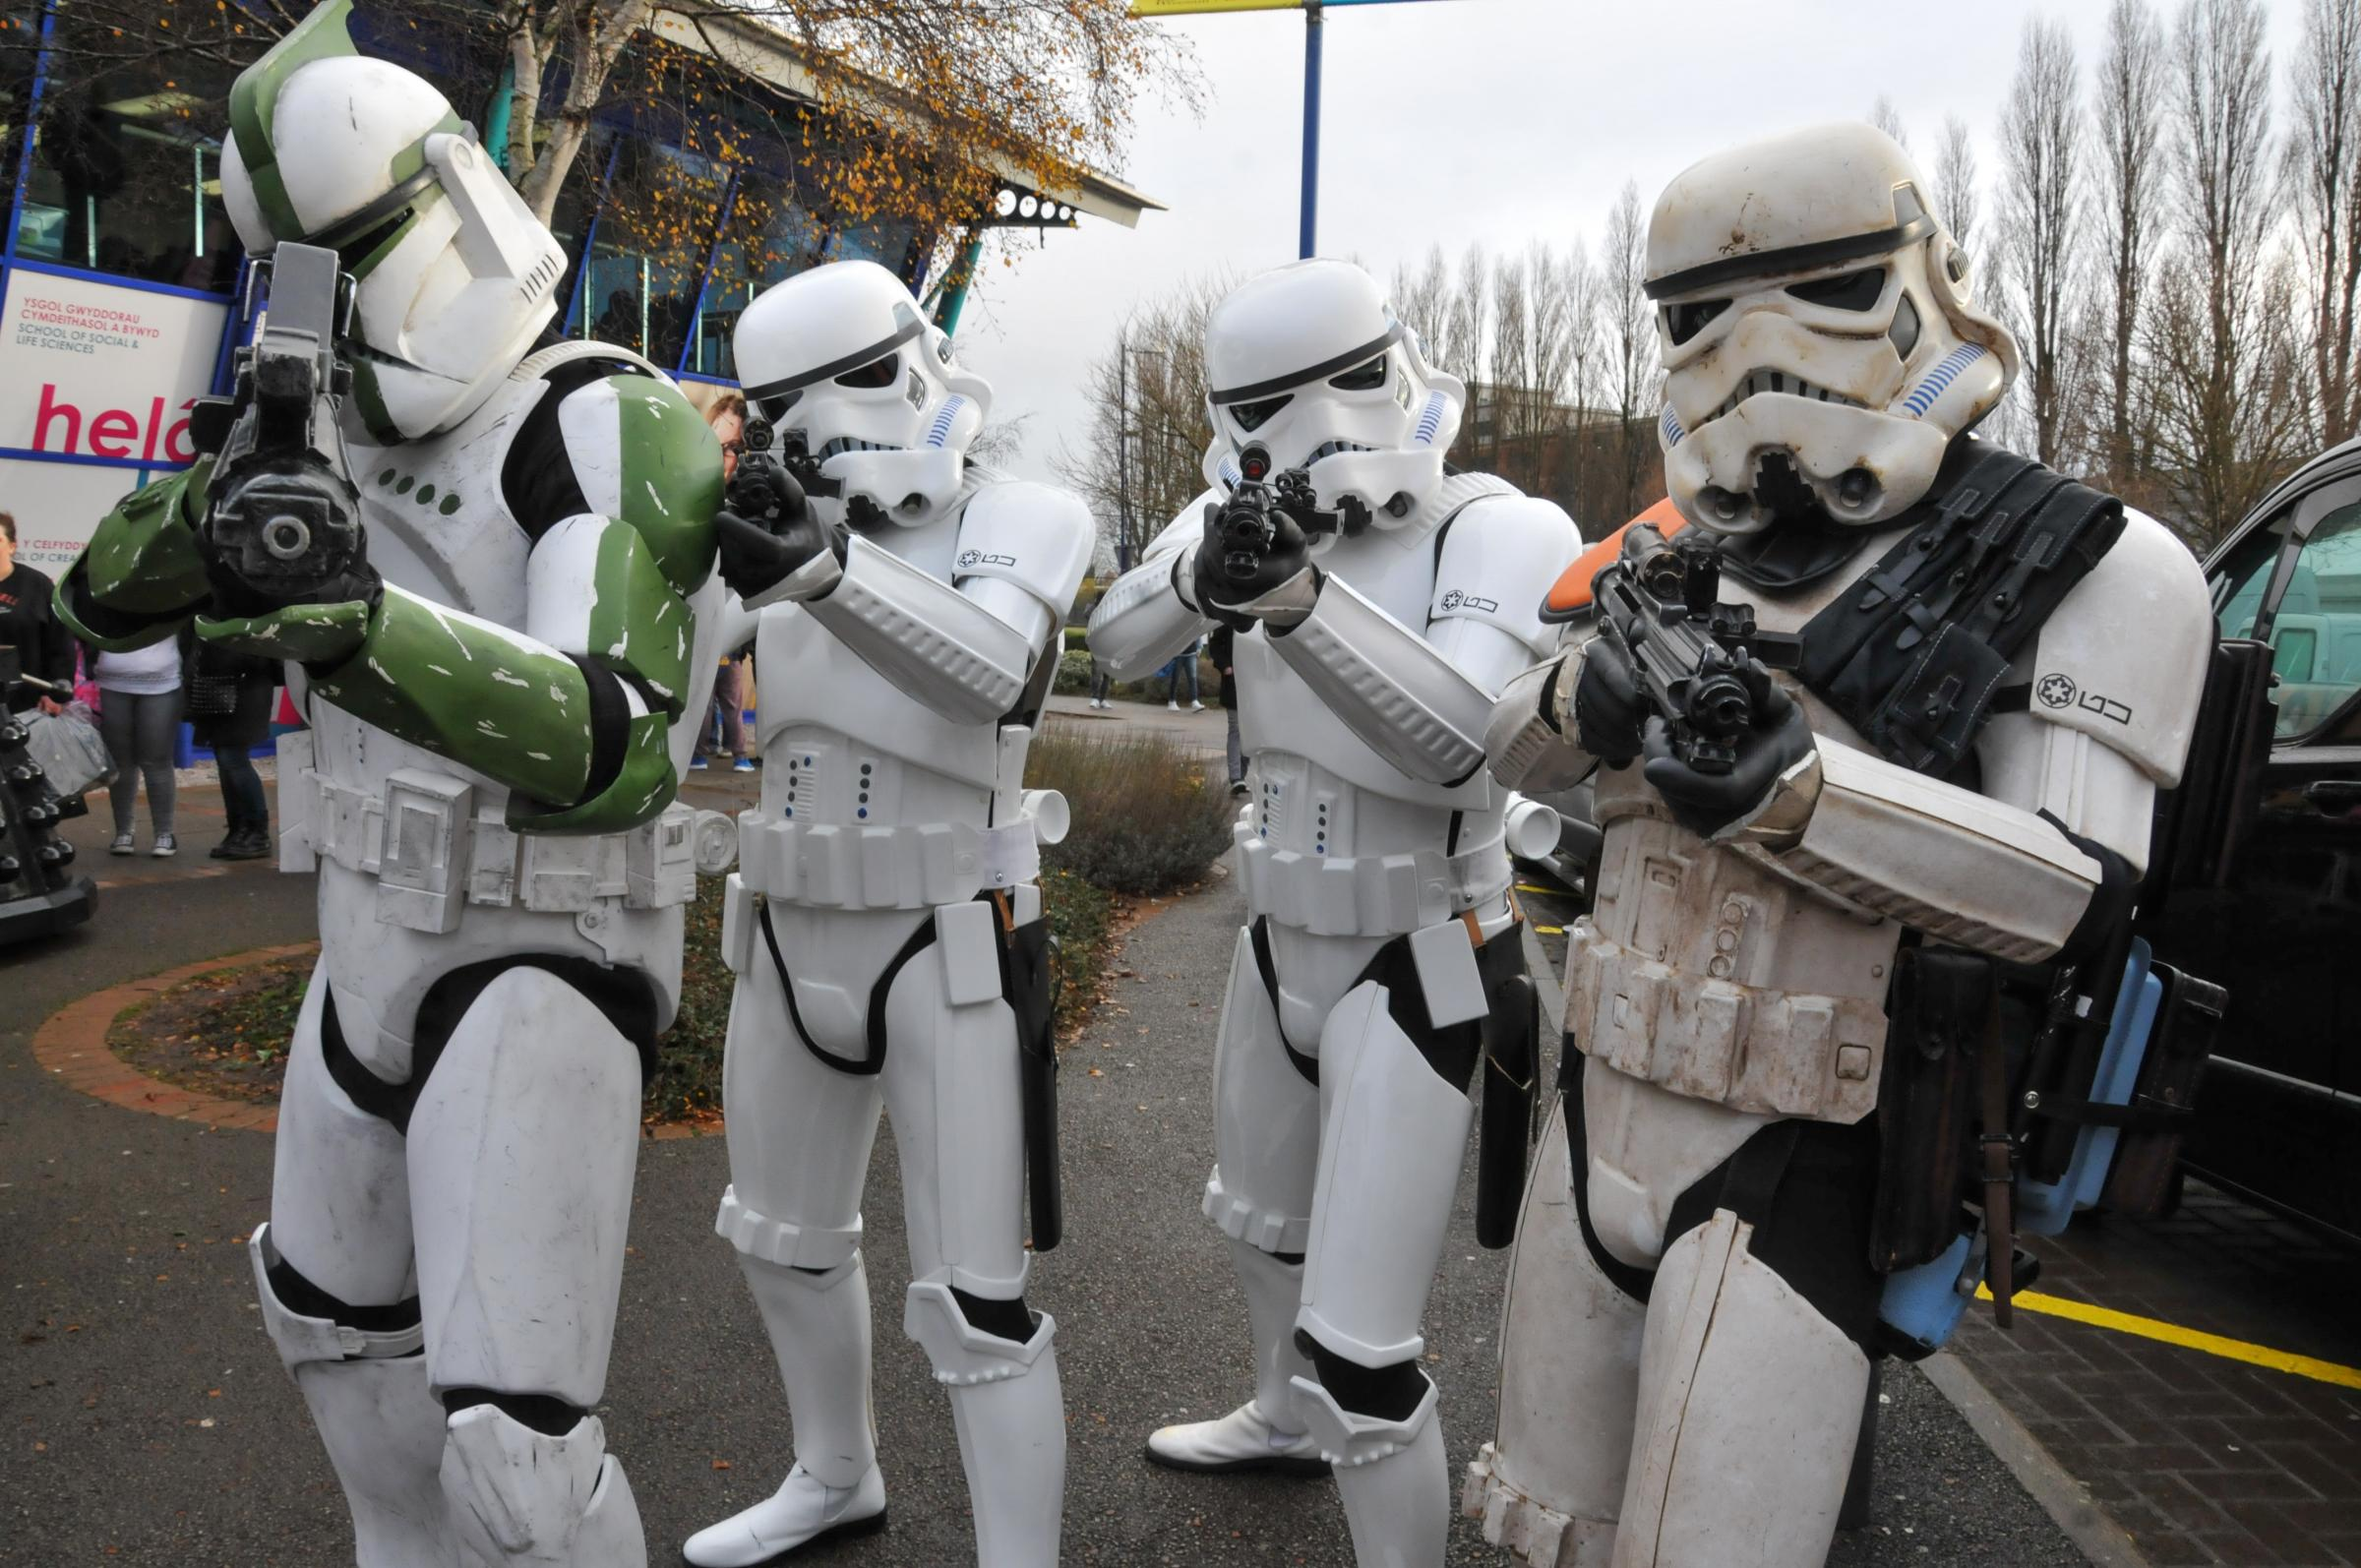 Wrexham Council and the Welsh Government hit back at claims of lack of support for Comic Con